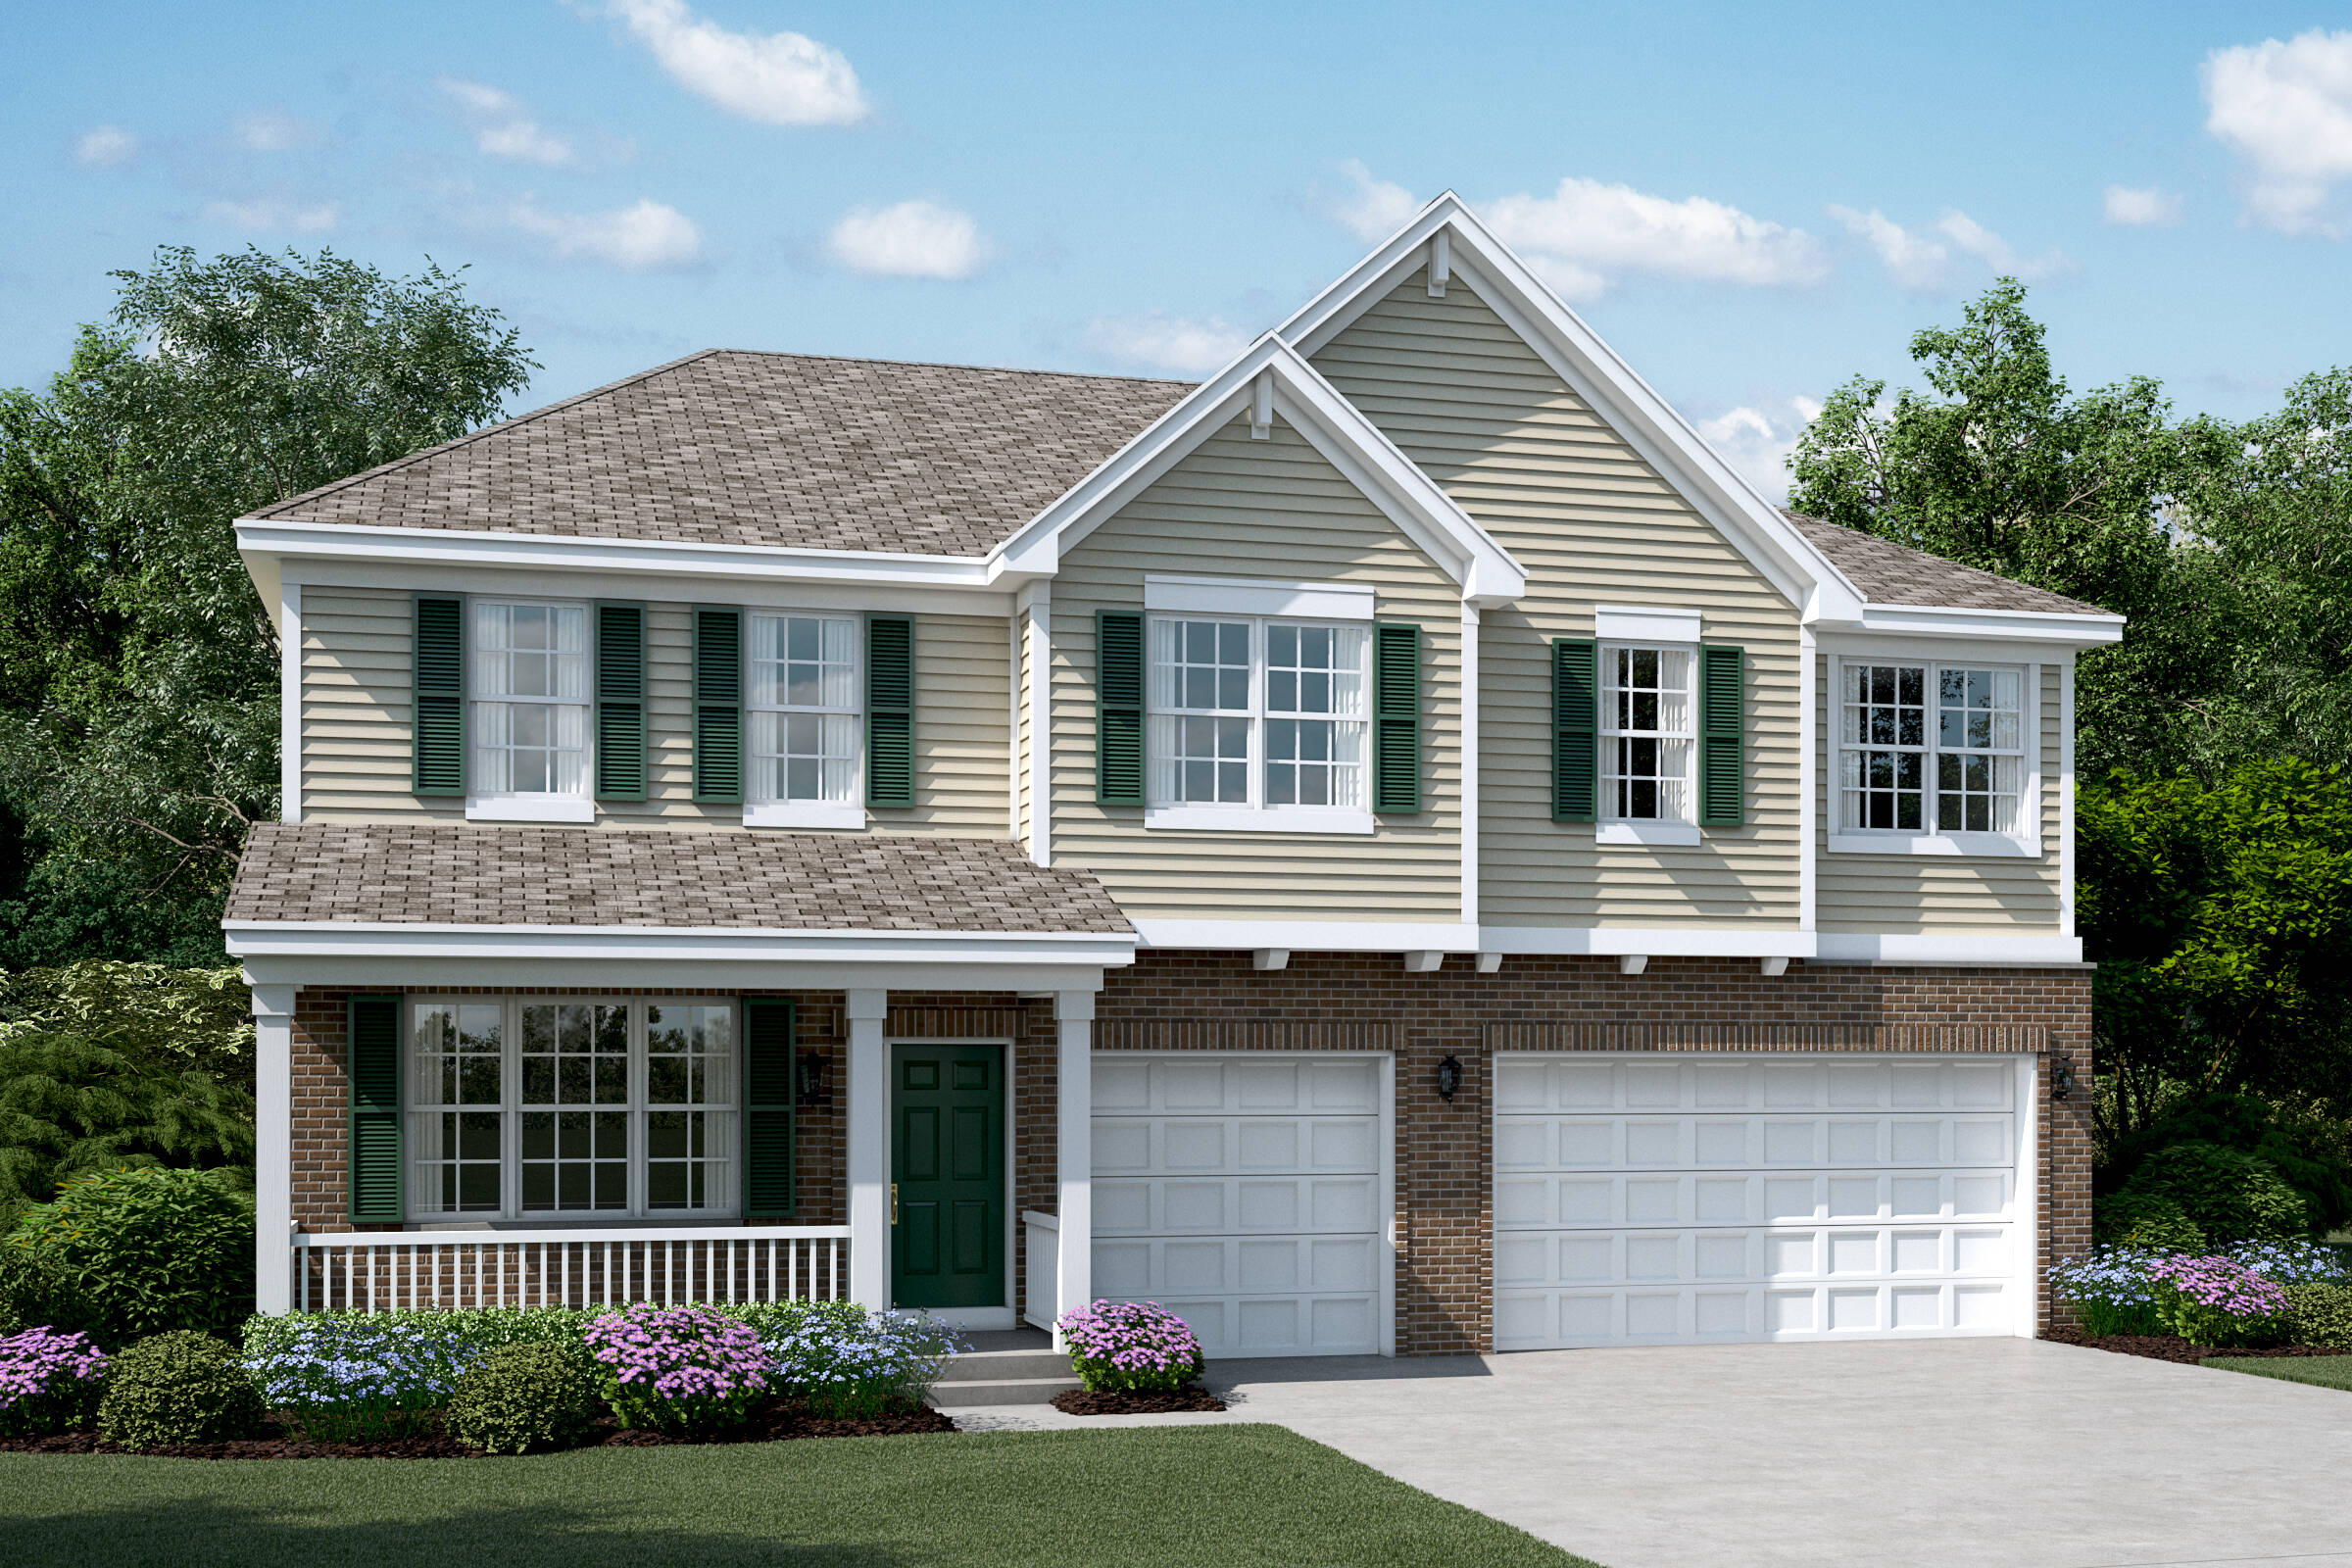 yorkshire bb new homes manhattan illinois